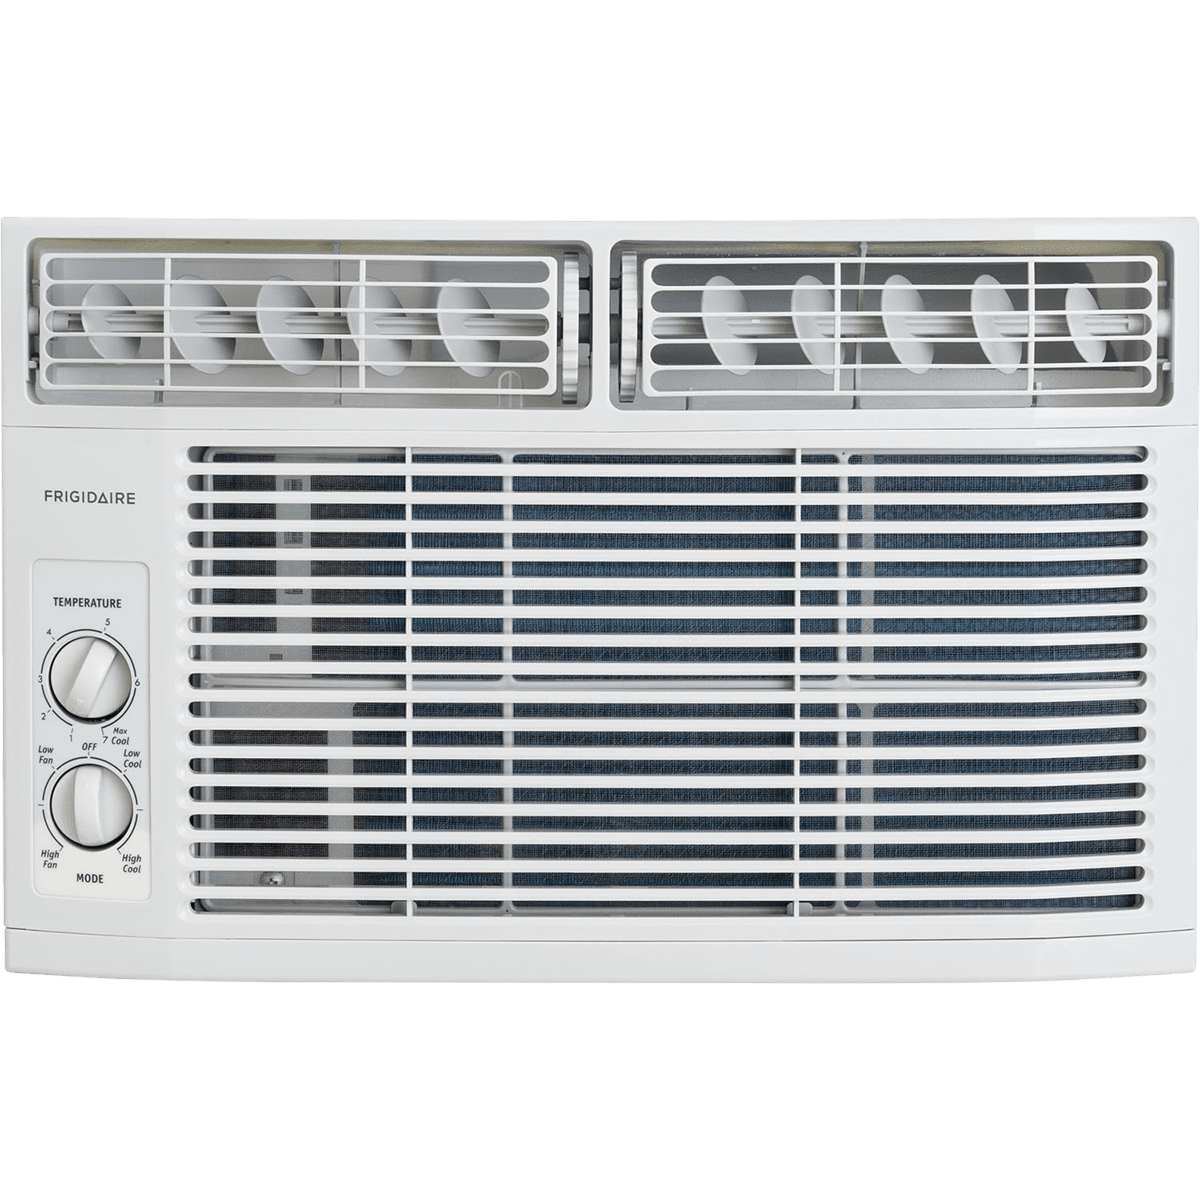 frigidaire ffra0811r1 115 v btu window air conditioner